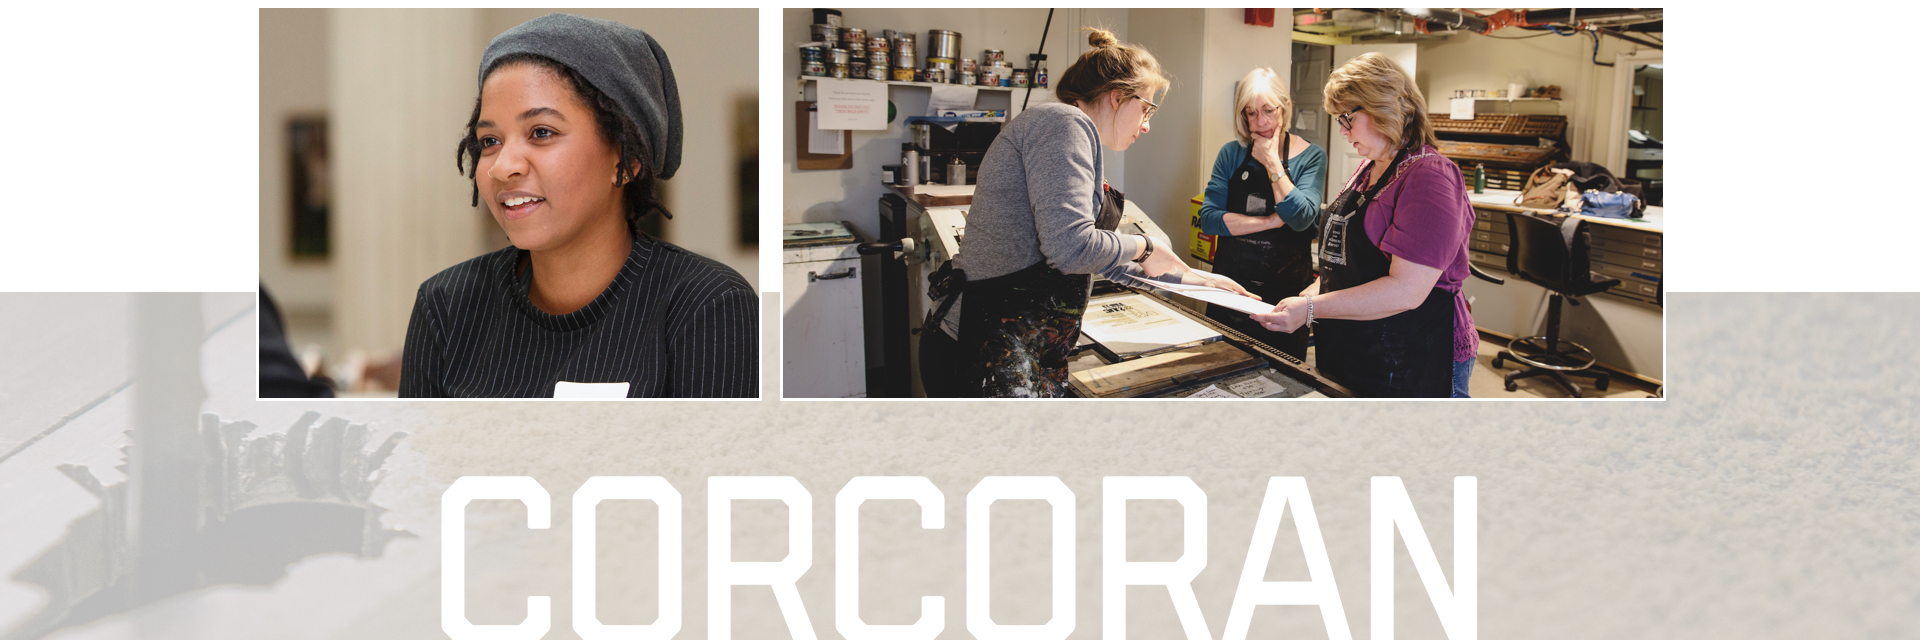 Corcoran; smiling female student; female students working over printer